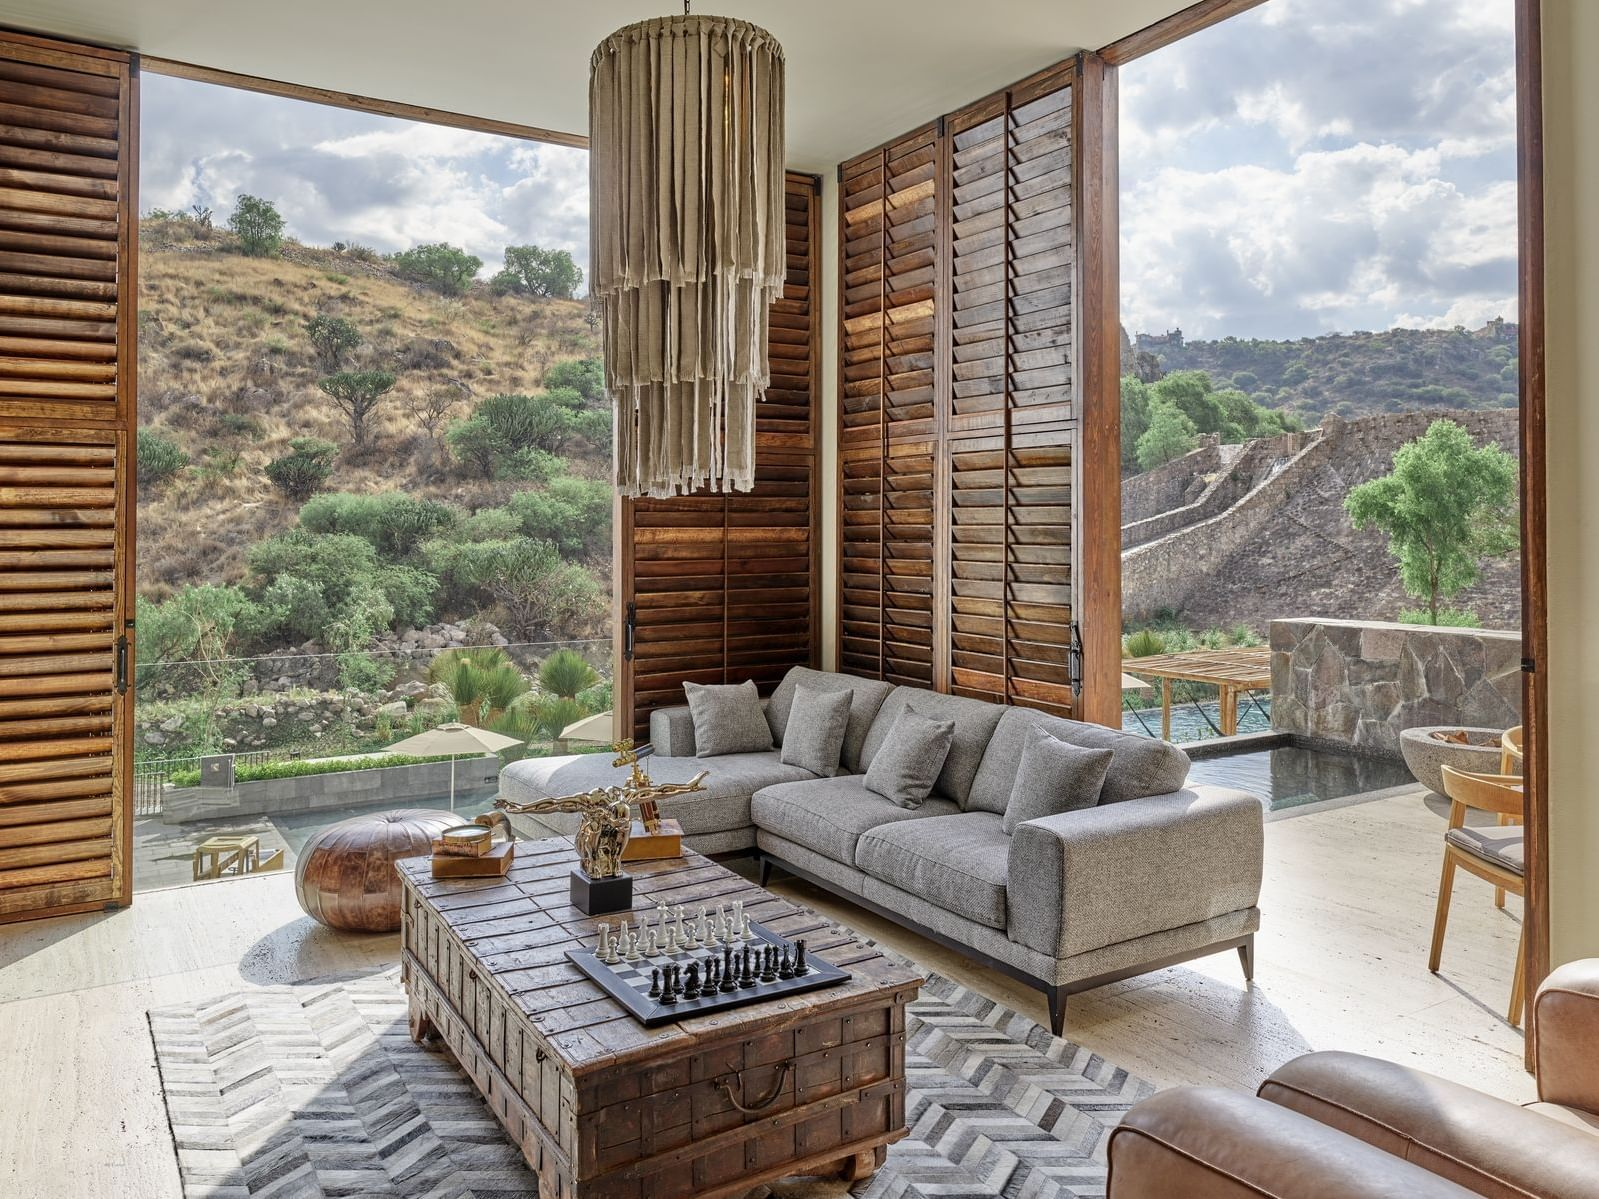 Presidential suite living room at the La Coleccion Resorts